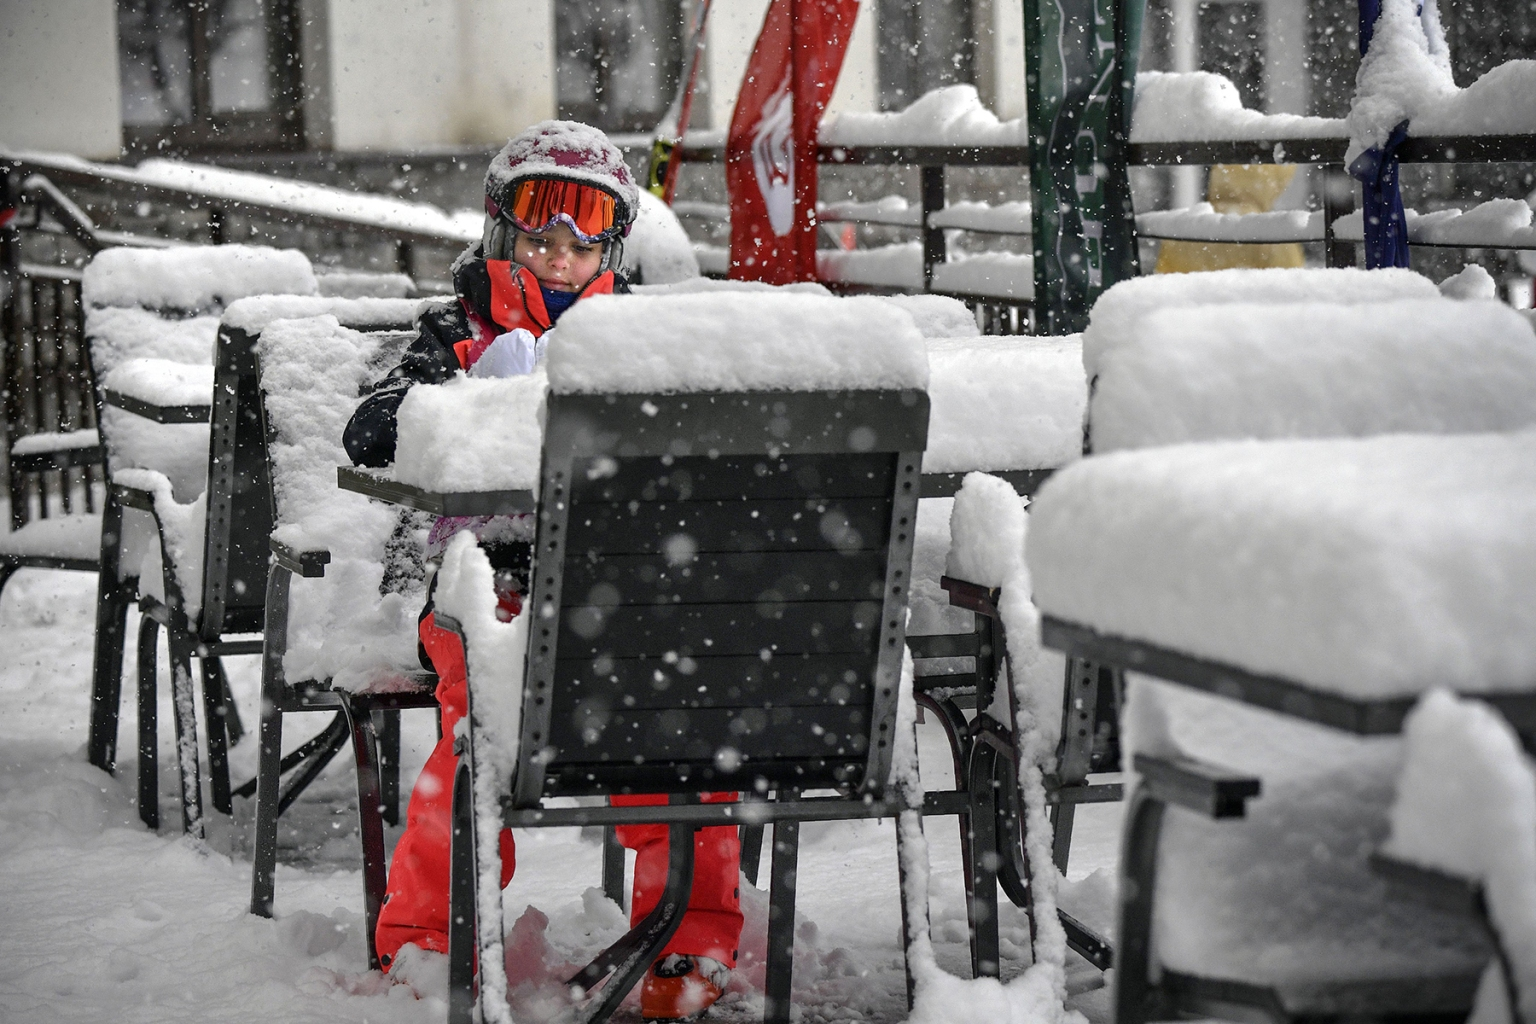 A girl sits at a table in a street cafe during heavy snow in the Rosa Khutor resort, outside Sochi, Russia, on March 1. Organizers were forced to cancel the Ladies FIS Alpine Ski World Cup downhill event at due to heavy snowfall. ALEXANDER NEMENOV/AFP/Getty Images